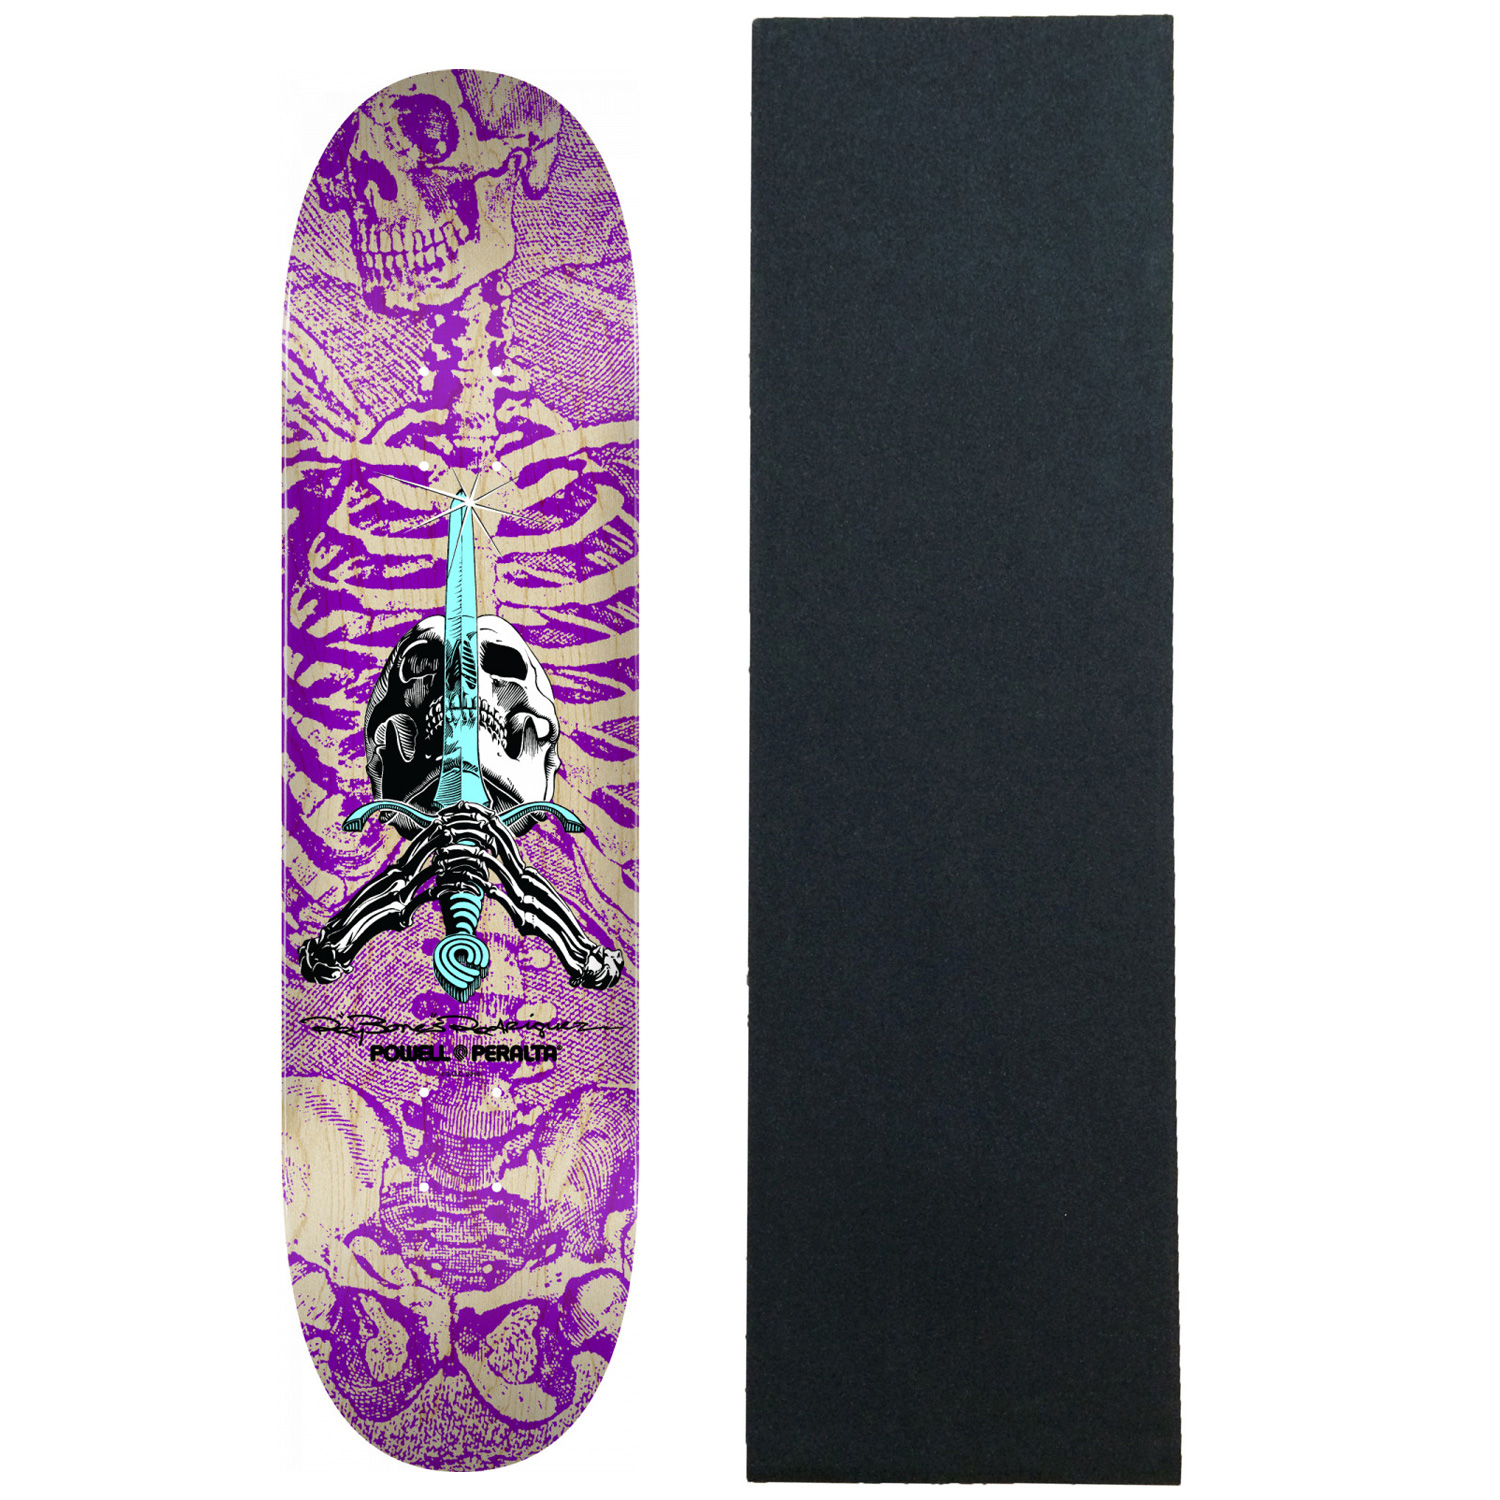 """Powell Peralta Skateboard Deck Skull and Sword Purple 9.0/"""" x 32.95/"""" with Grip"""